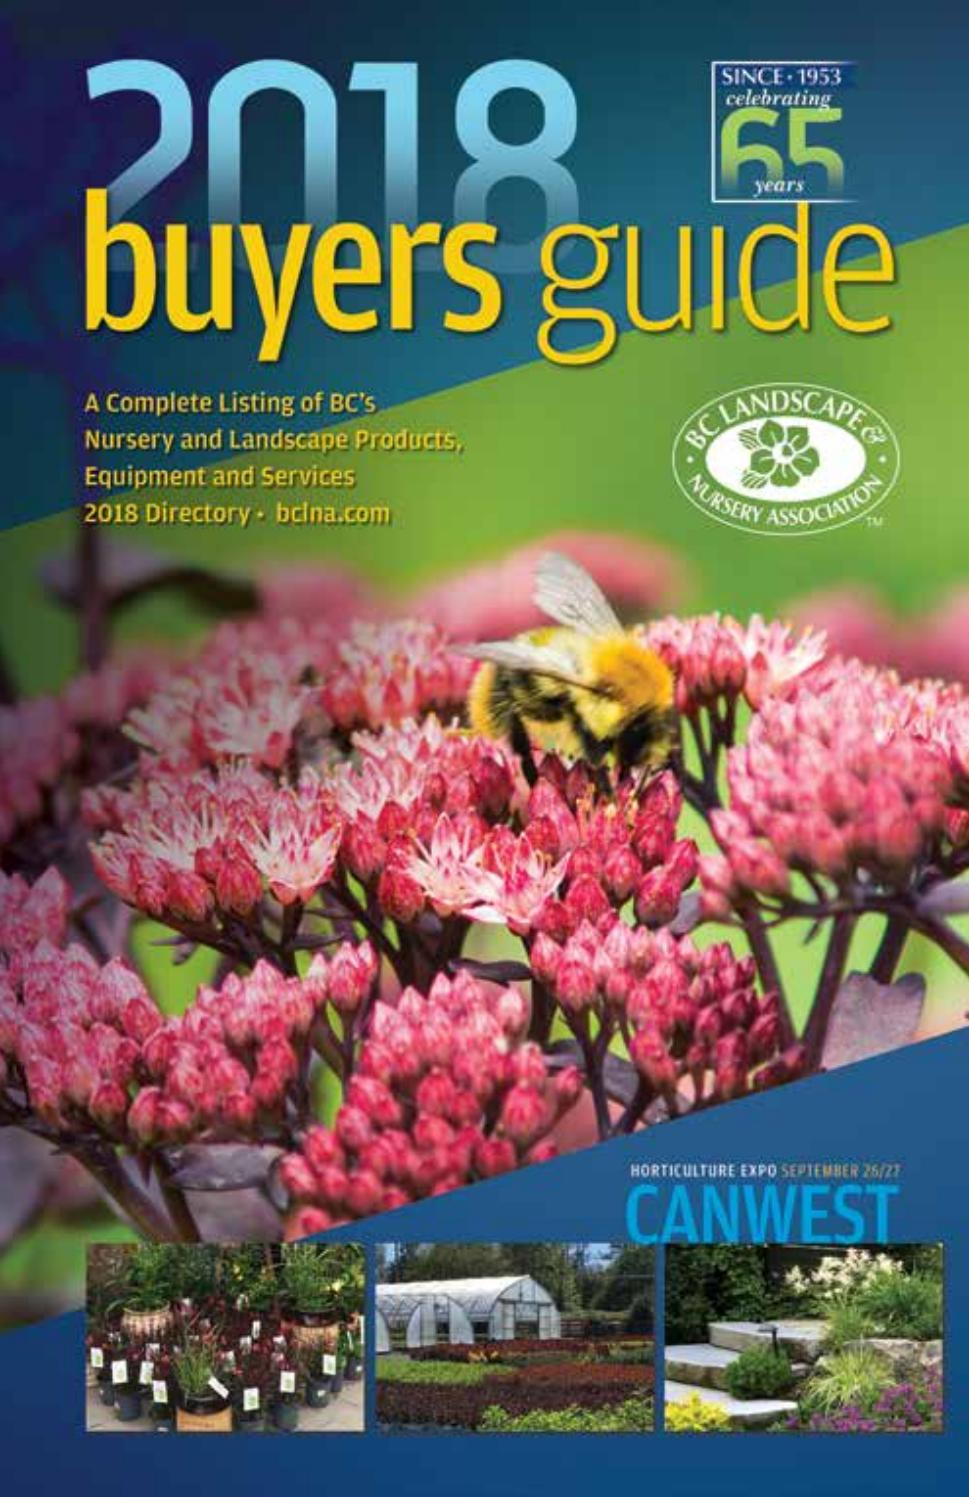 40b649aac0 BC Landscape & Nursery Association: Buyers Guide & Directory 2018 by ...